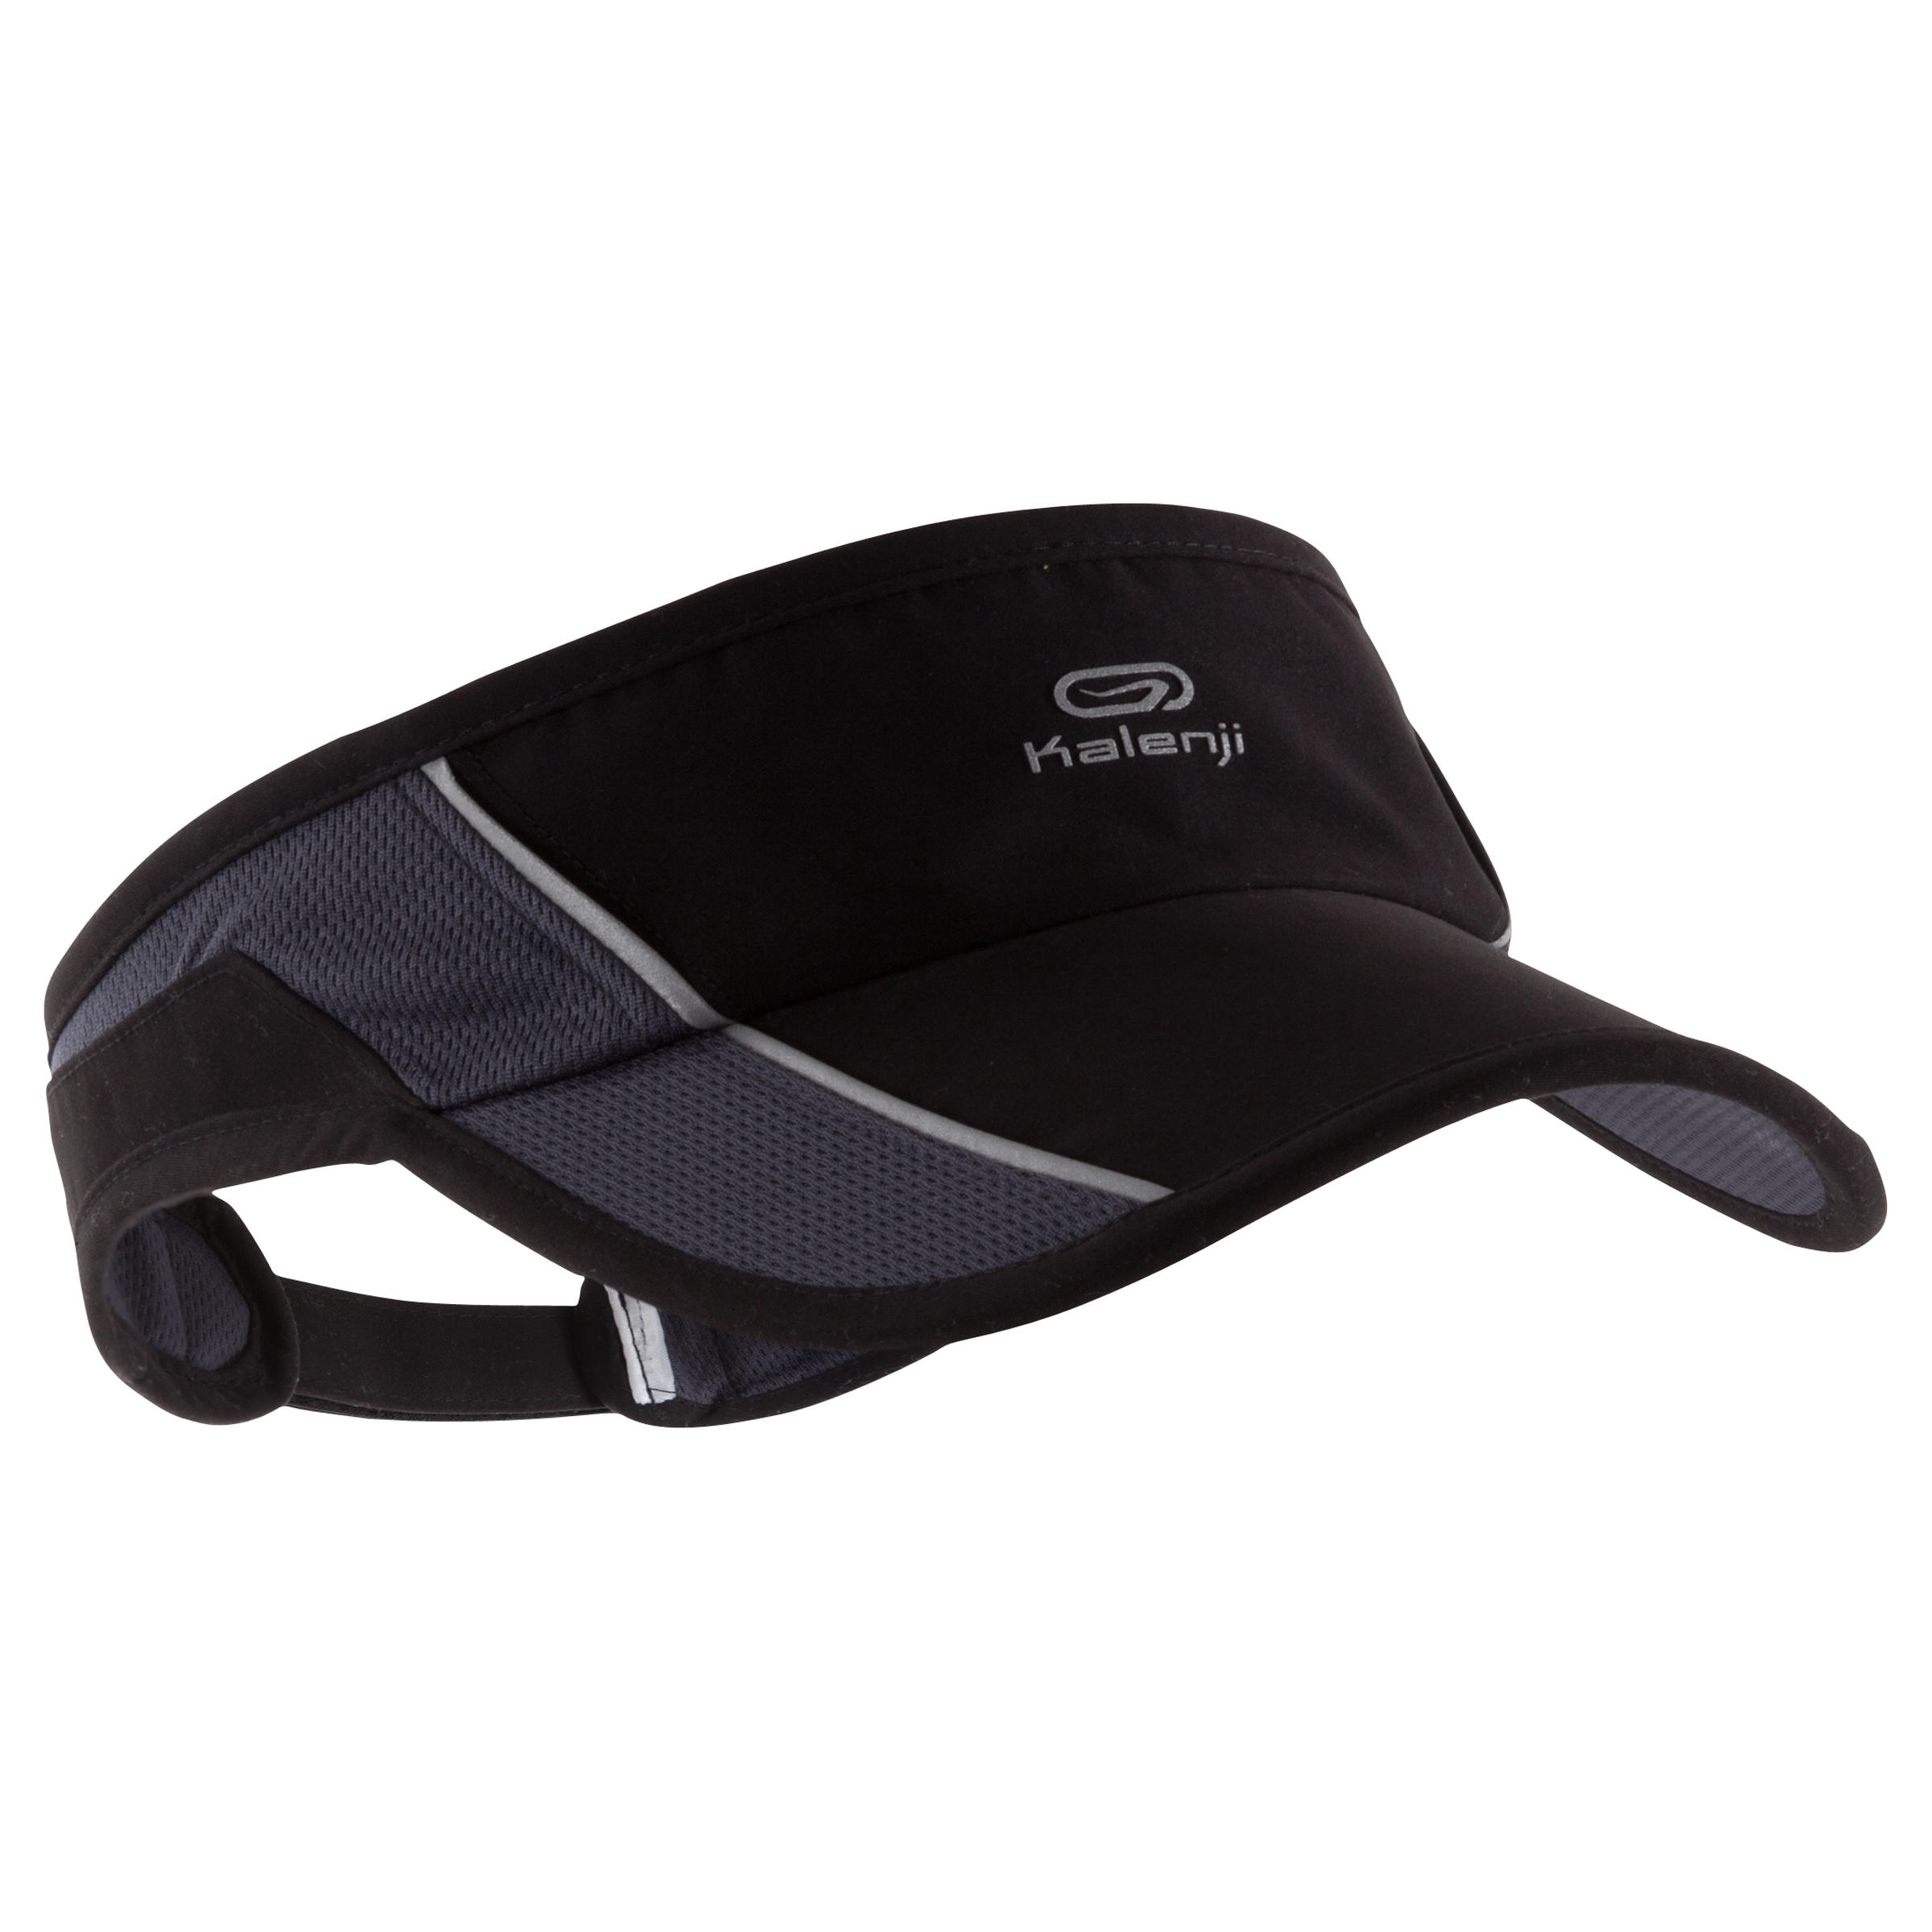 Running Visor - Black